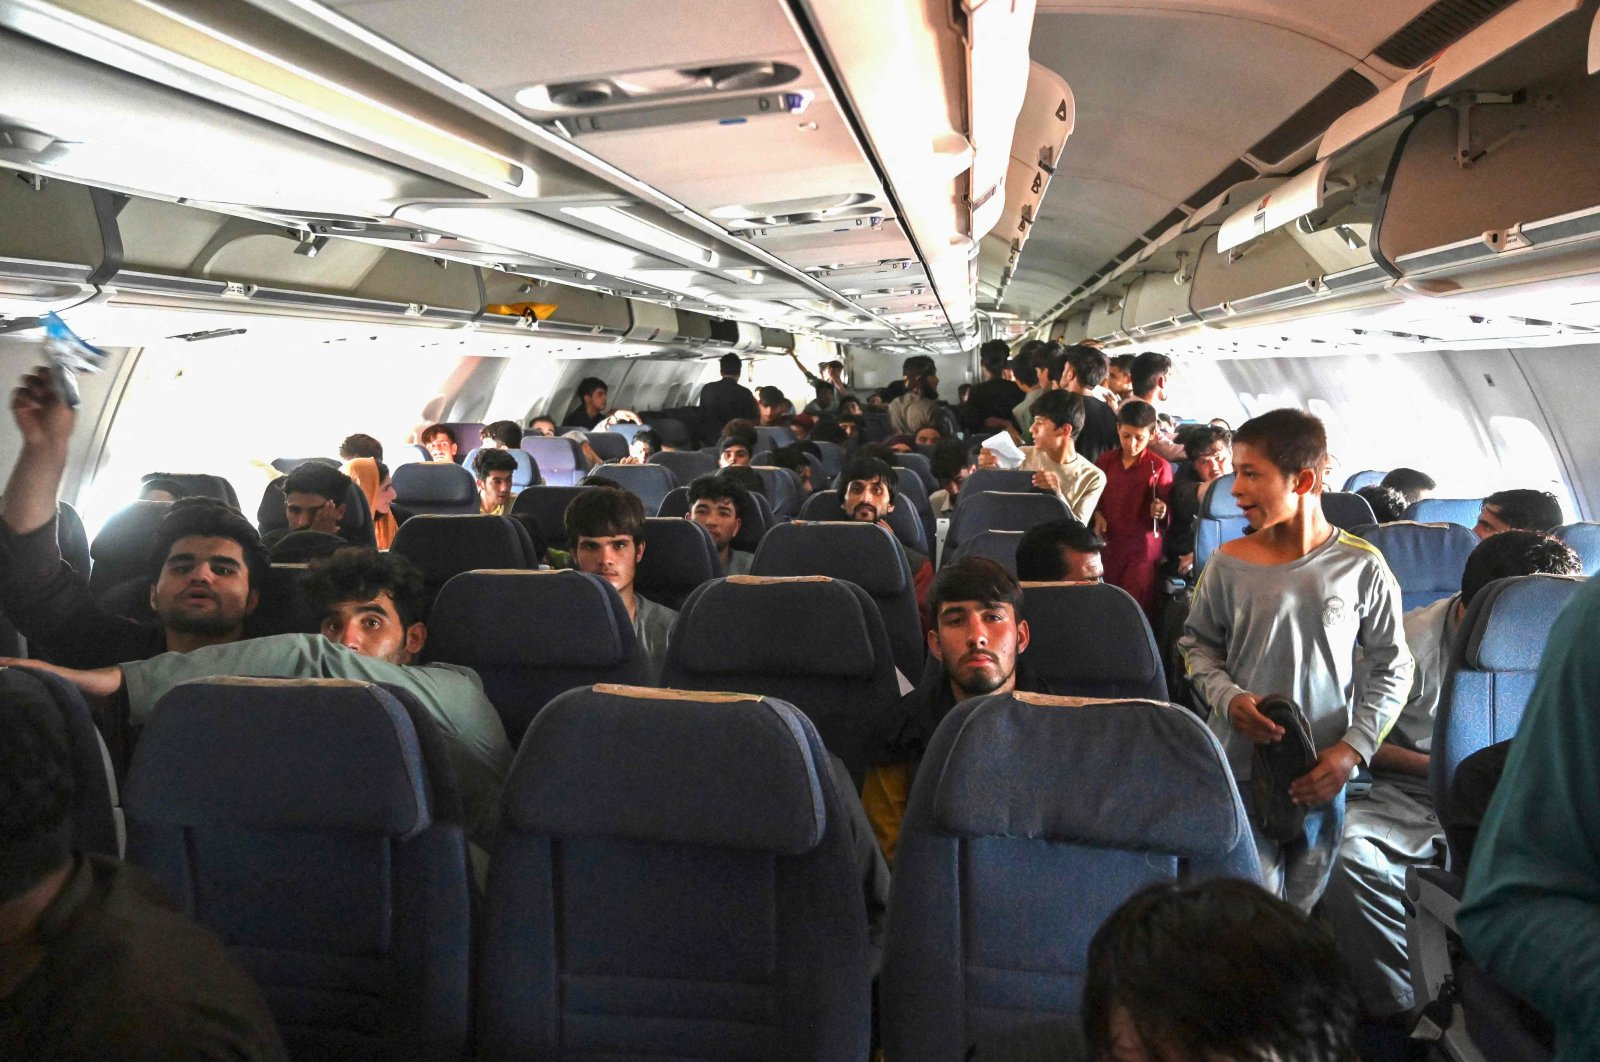 Afghan passengers sit inside a plane as they wait to leave Kabul Hamid Karzai International Airport, Kabul, Afghanistan, Aug. 16, 2021. (AFP Photo)